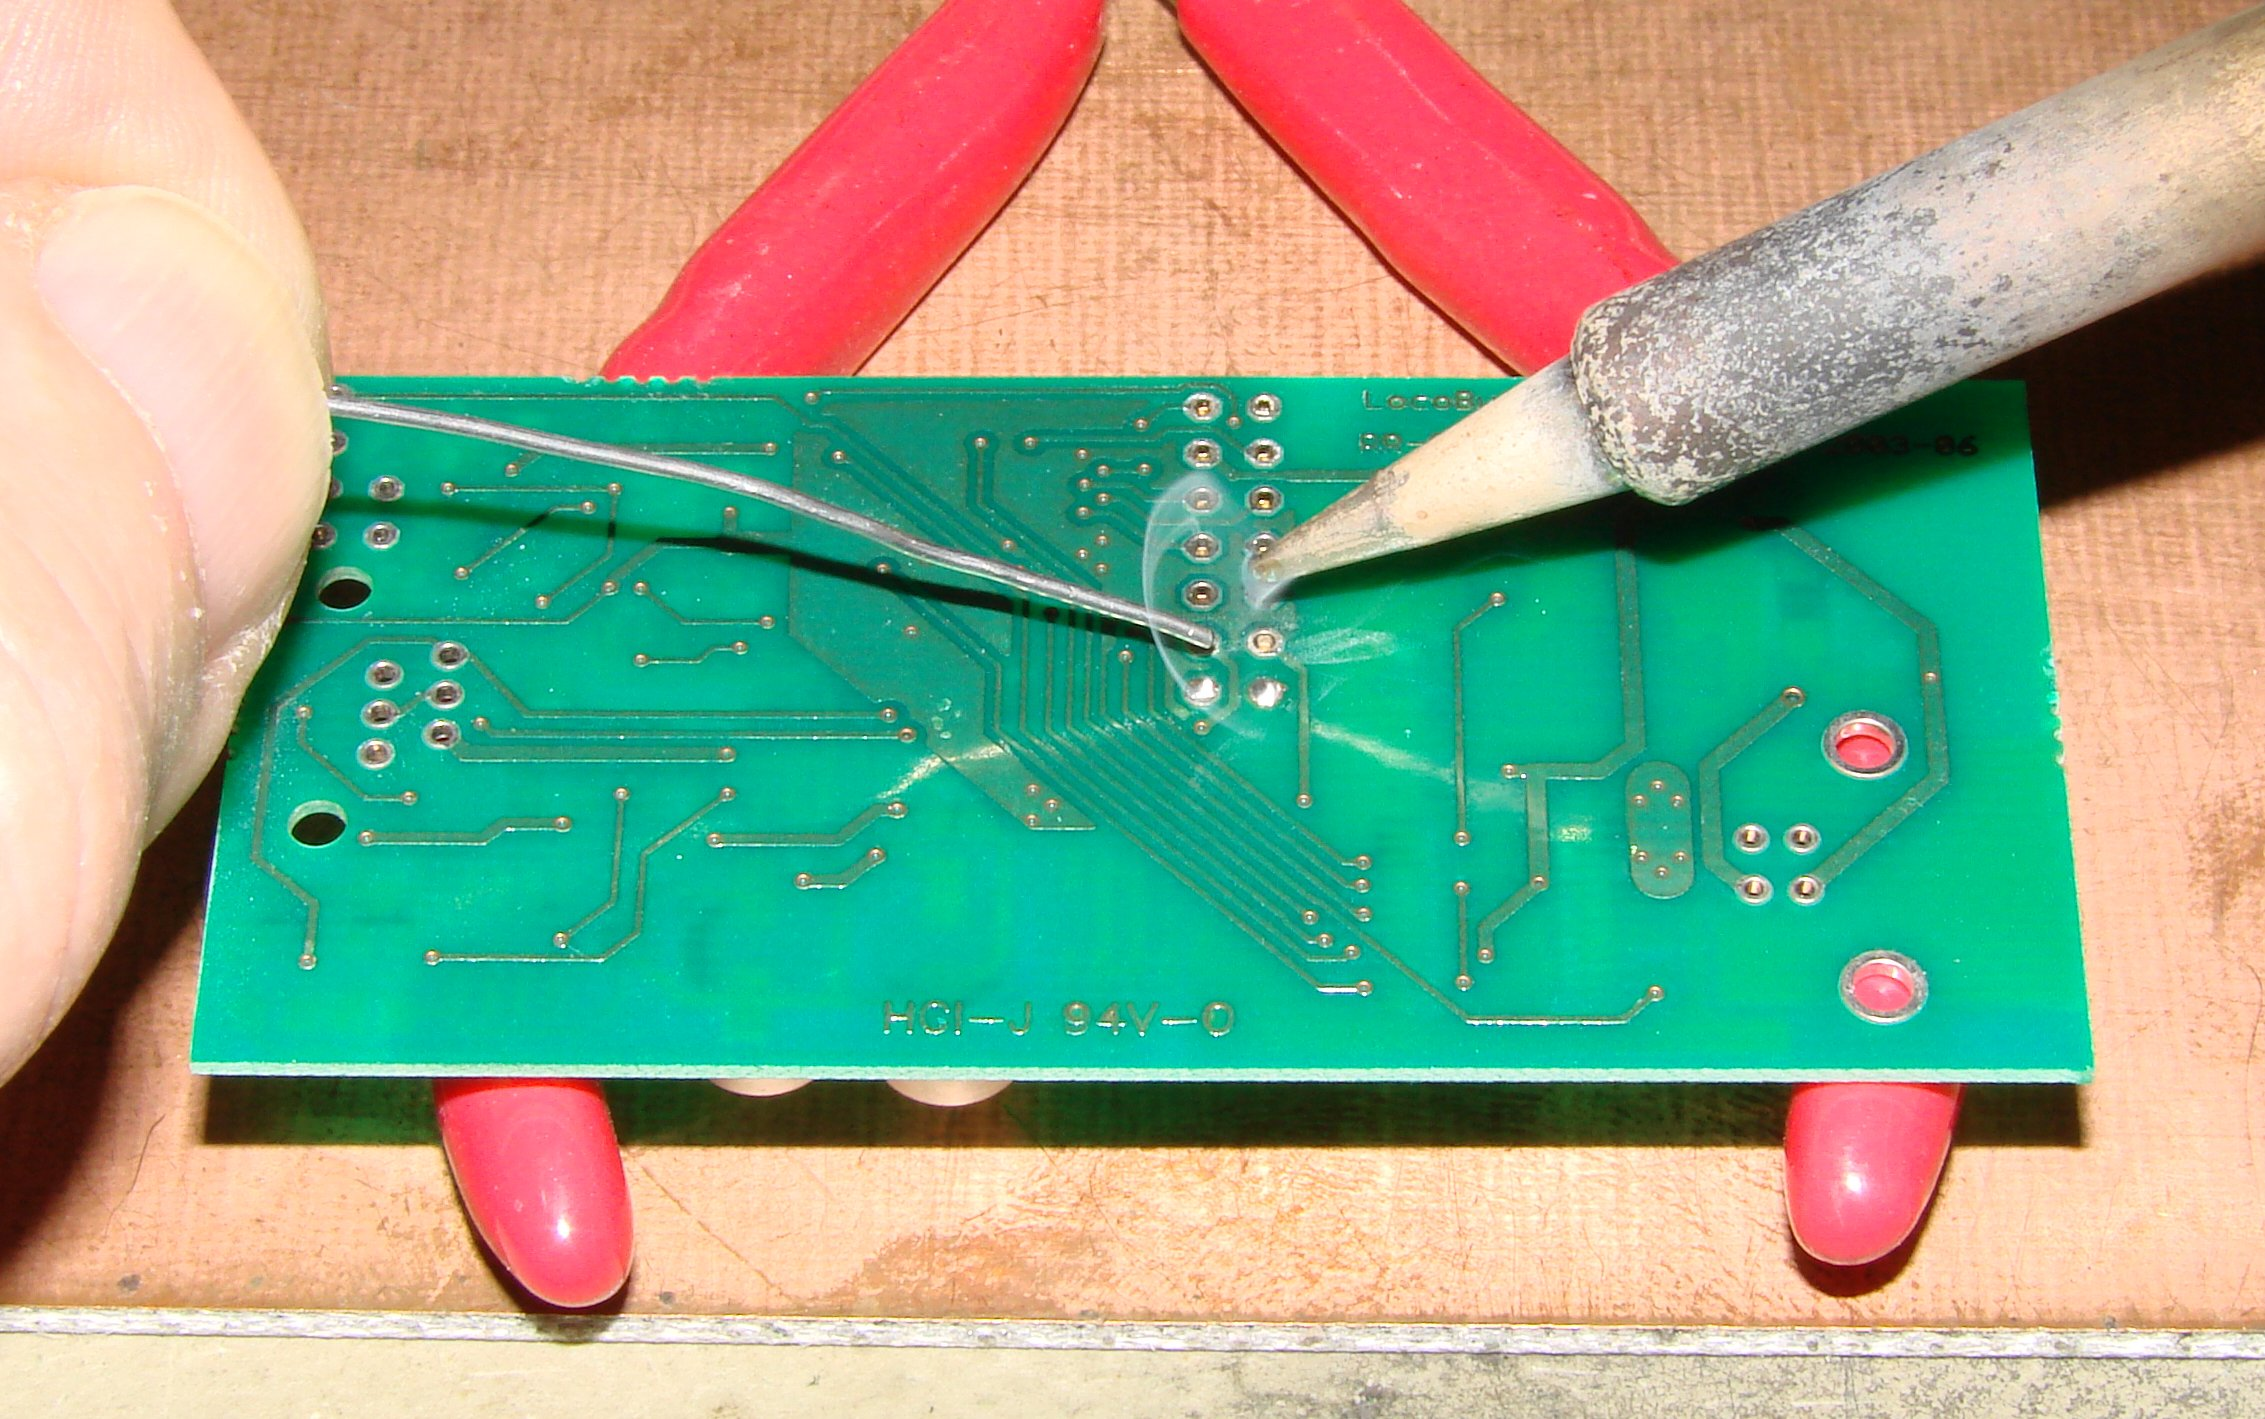 Circuit Board Assembly Electronic Pcb With Surface Mount